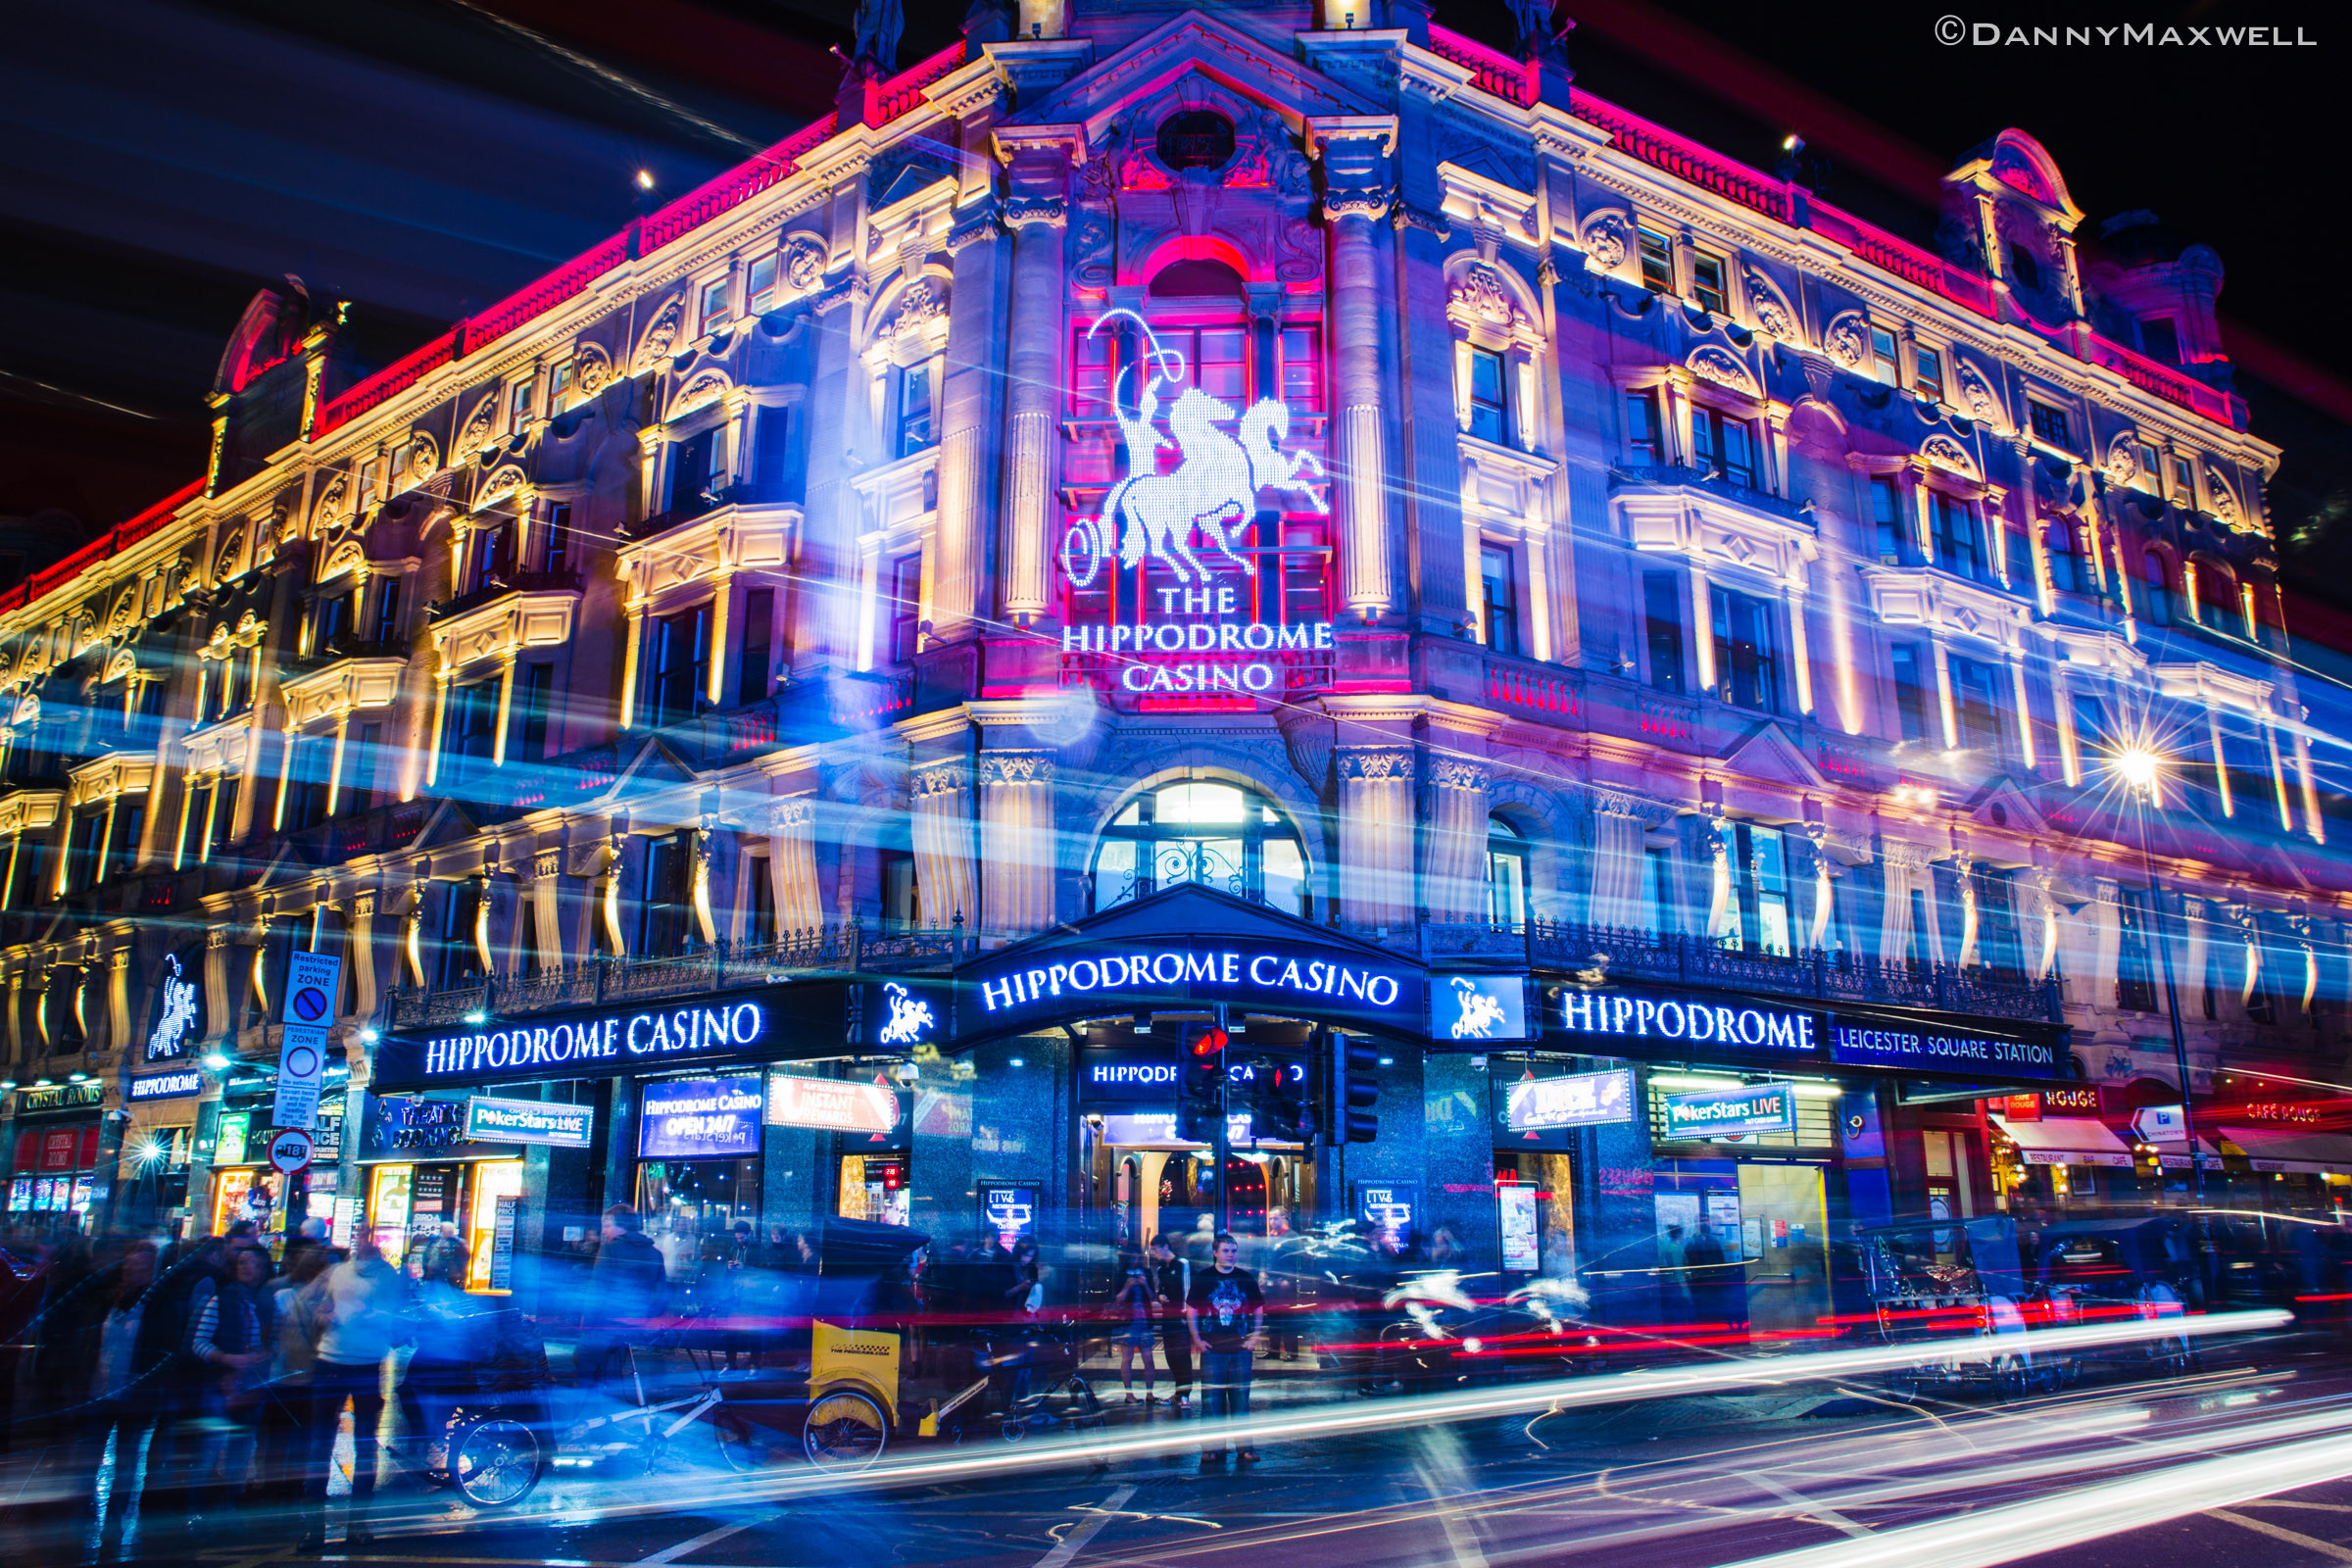 Hippodrome London